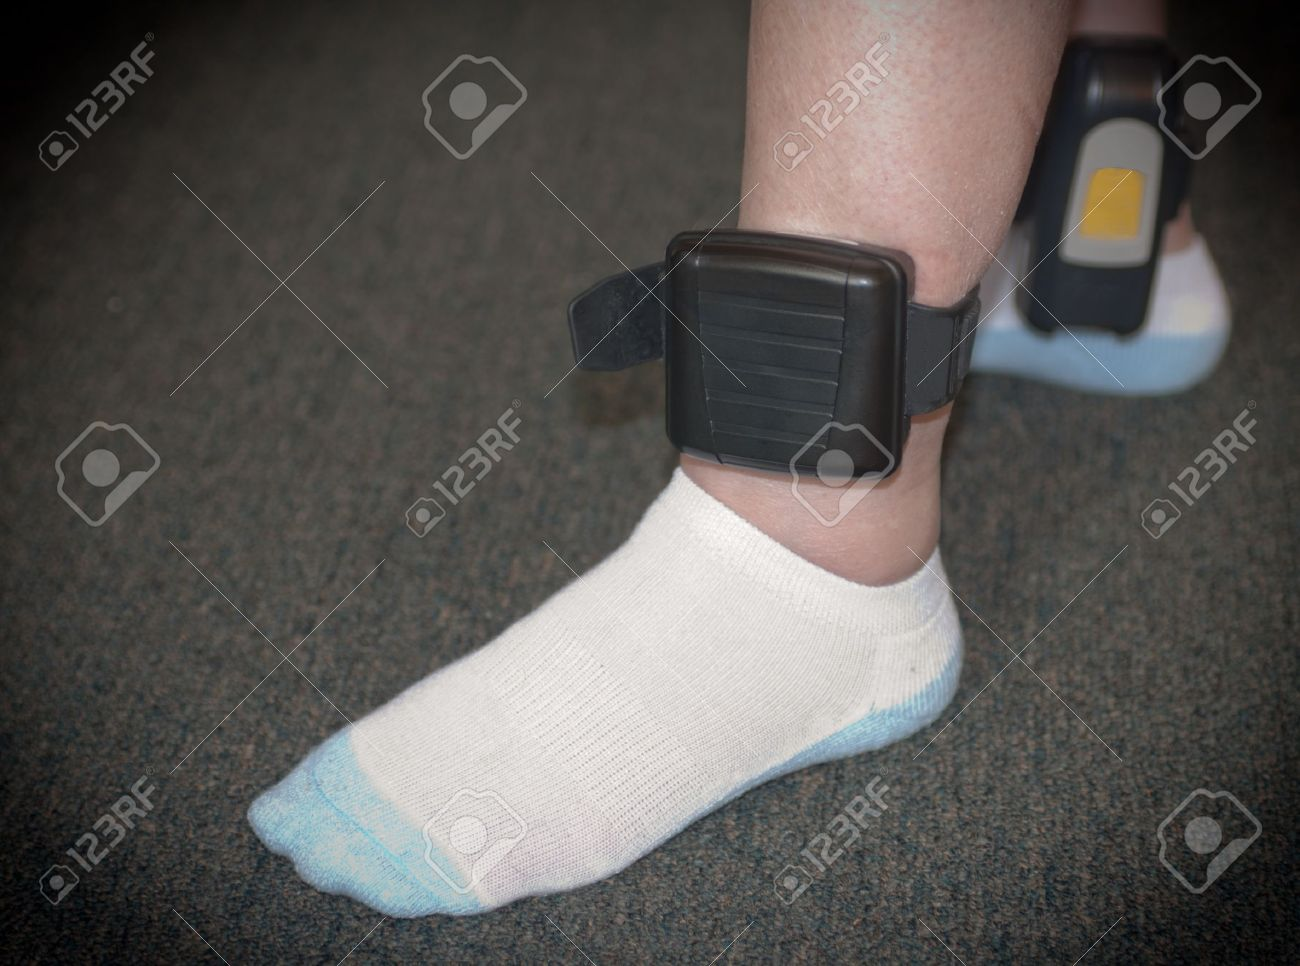 ankle wiki the wikipedia monitor bracelet anklet